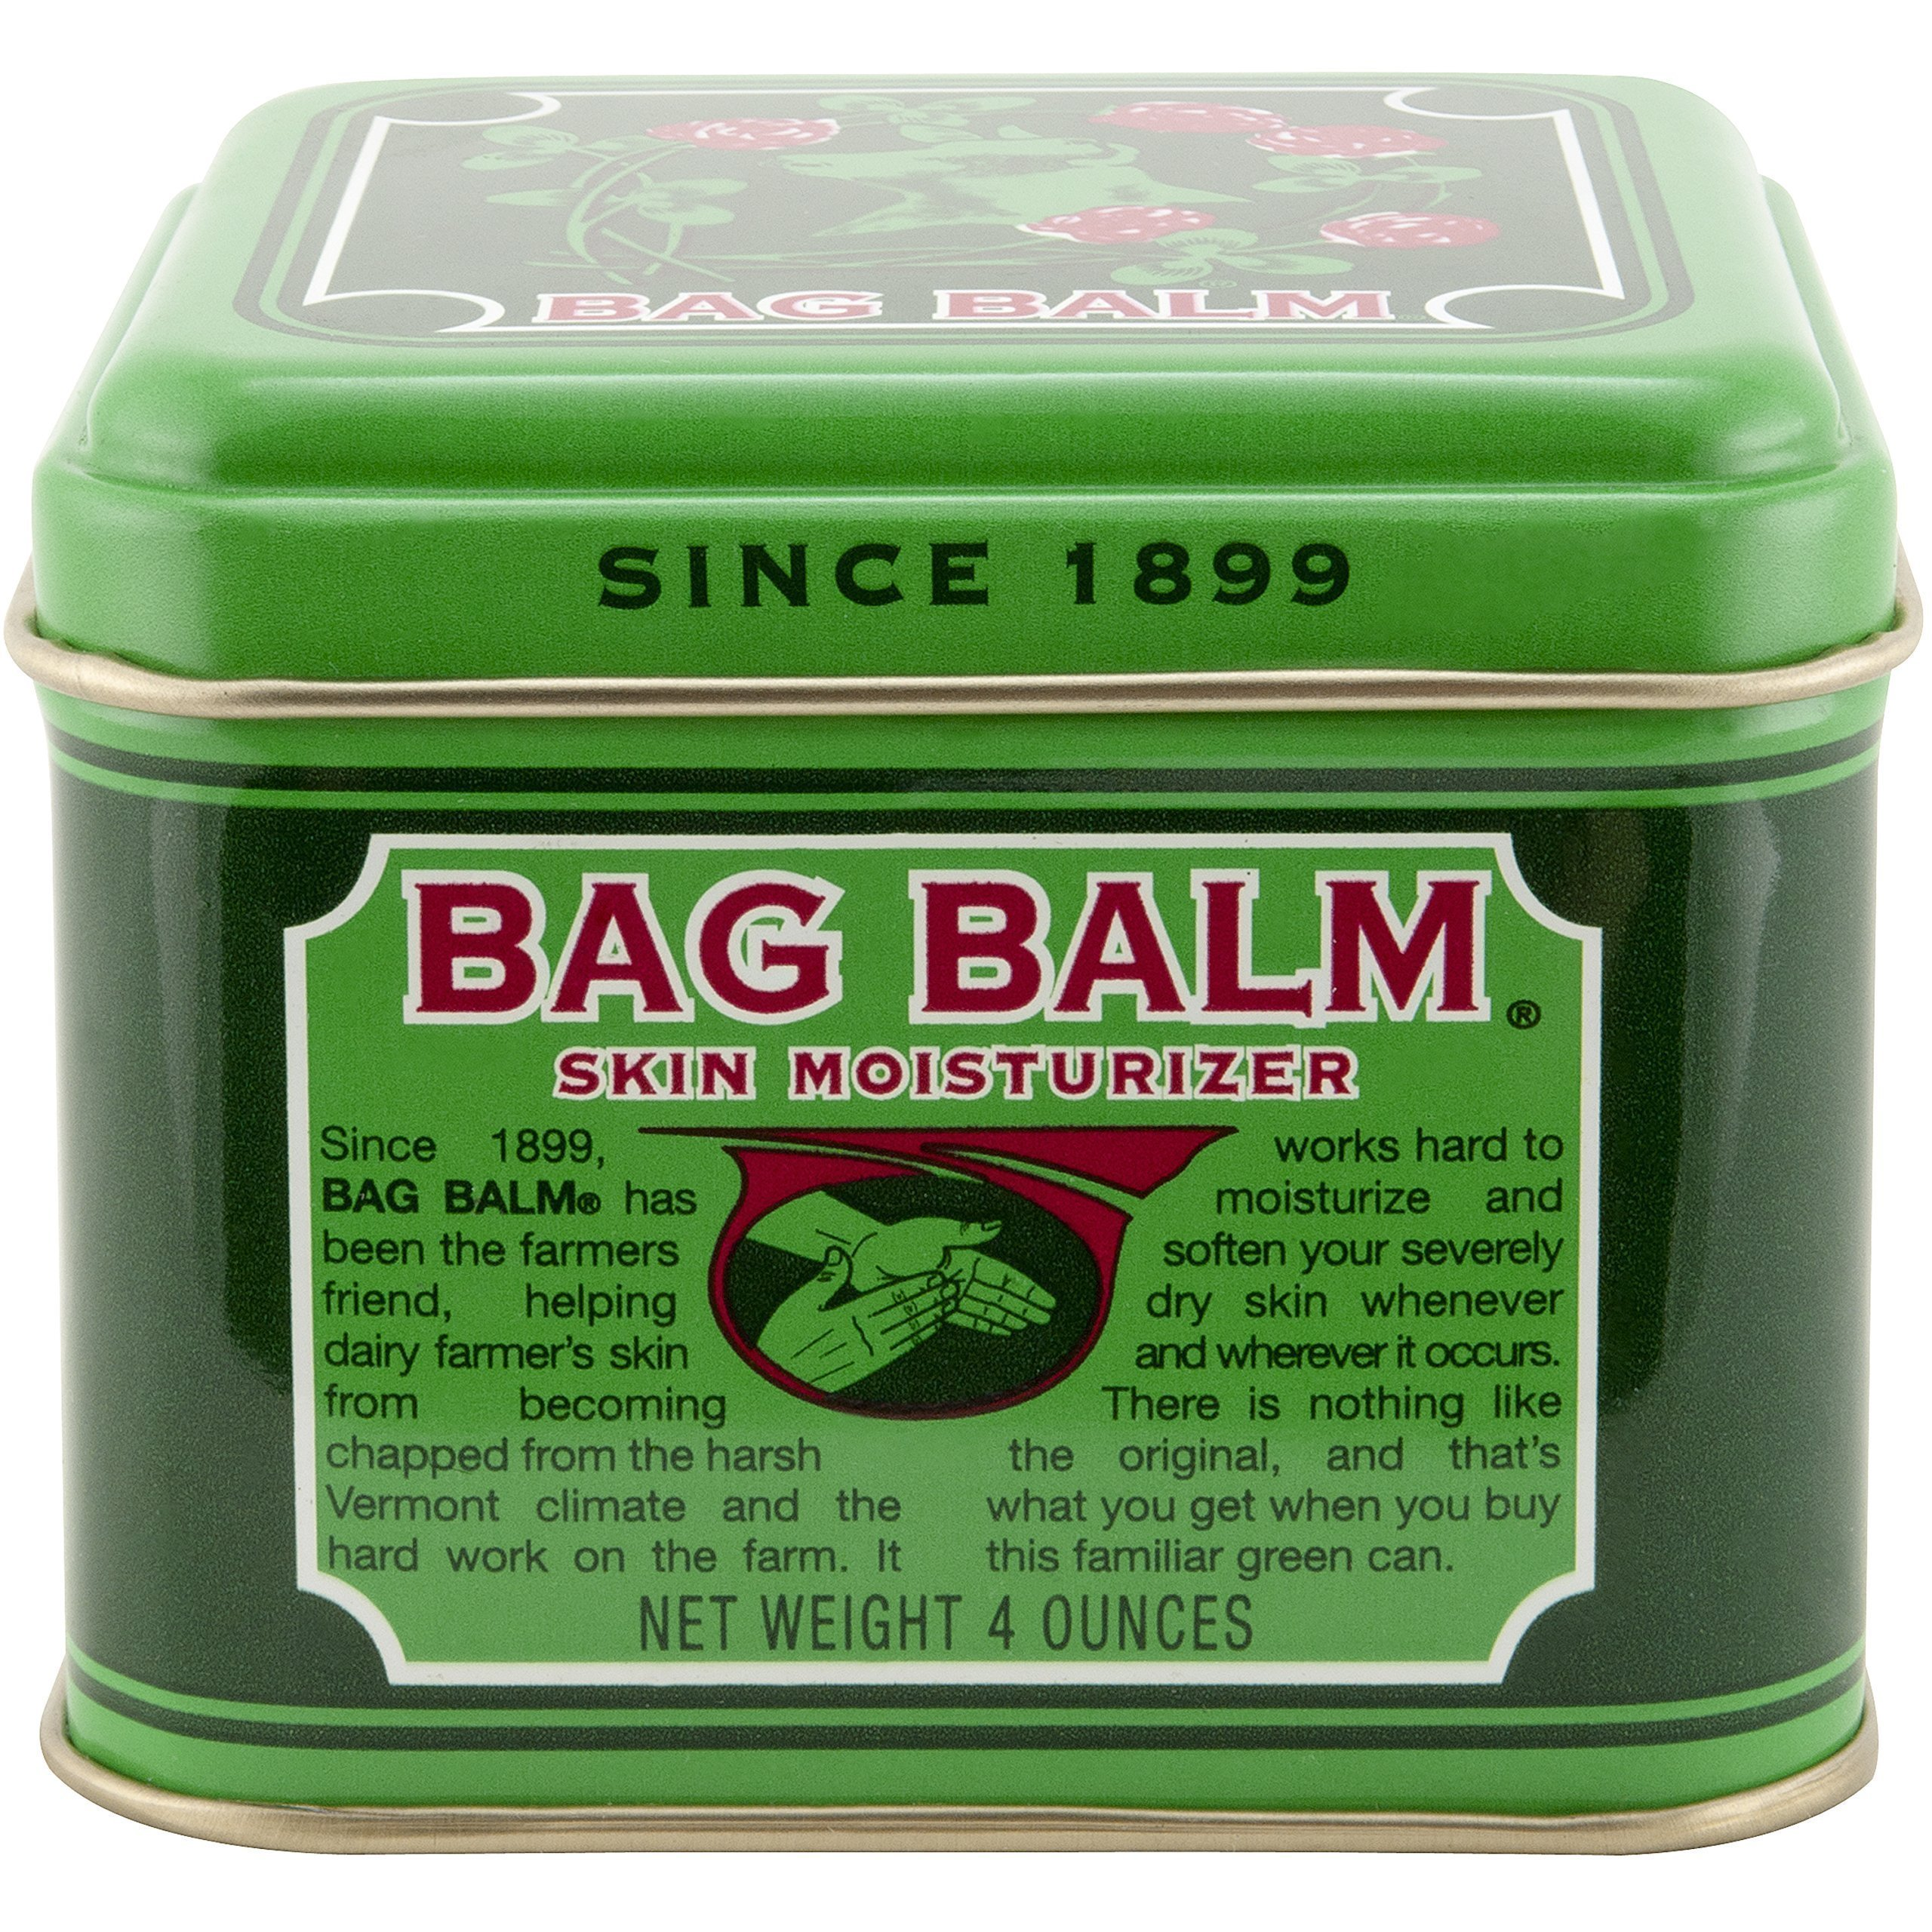 Vermont's Original Bag Balm Skin Moisturizer, 4 Ounce Tin, Moisturizing Ointment for Dry Skin that can Crack, Split, or Chafe